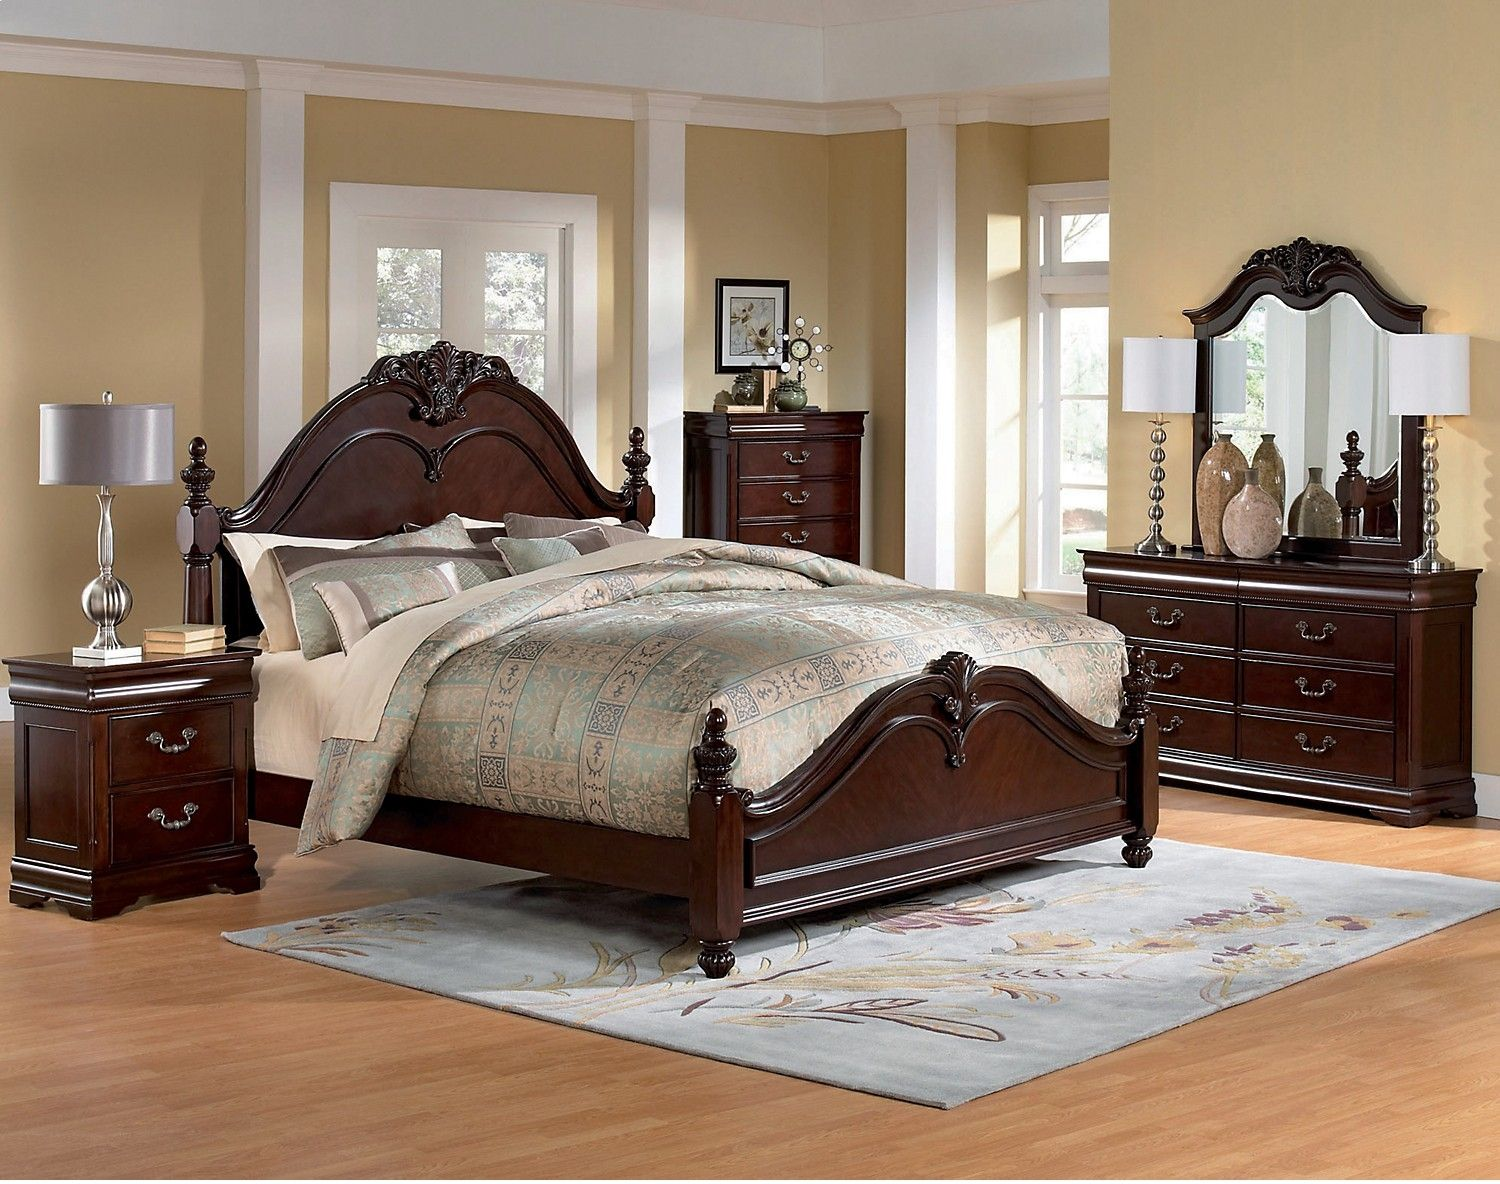 Westchester 5Piece Queen Bedroom Set  King Bedroom Warehouse Inspiration King And Queen Bedroom Decor Decorating Design